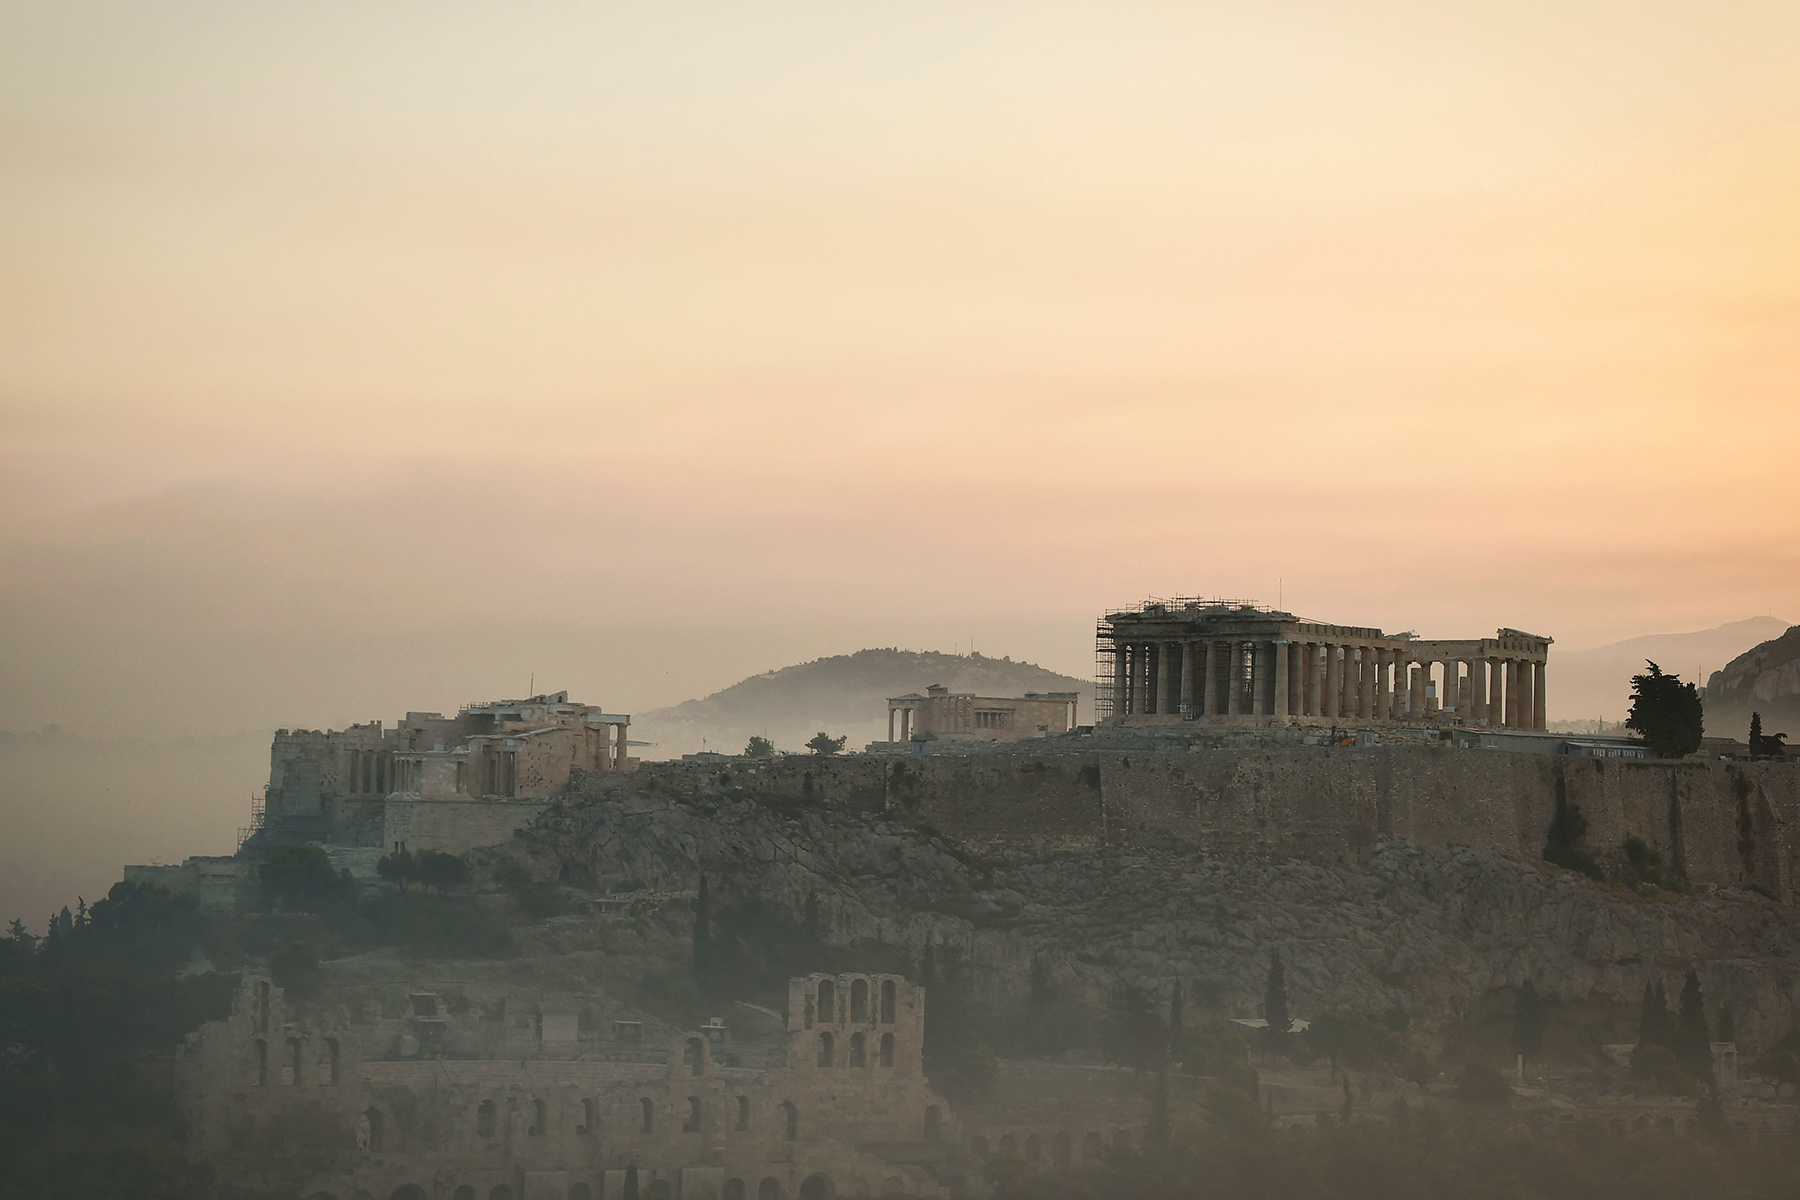 Smoke covering Athens centre and the Acropolis, due to fires burning at the foot of Mount Parnes, 30 kilometres north of Athens.